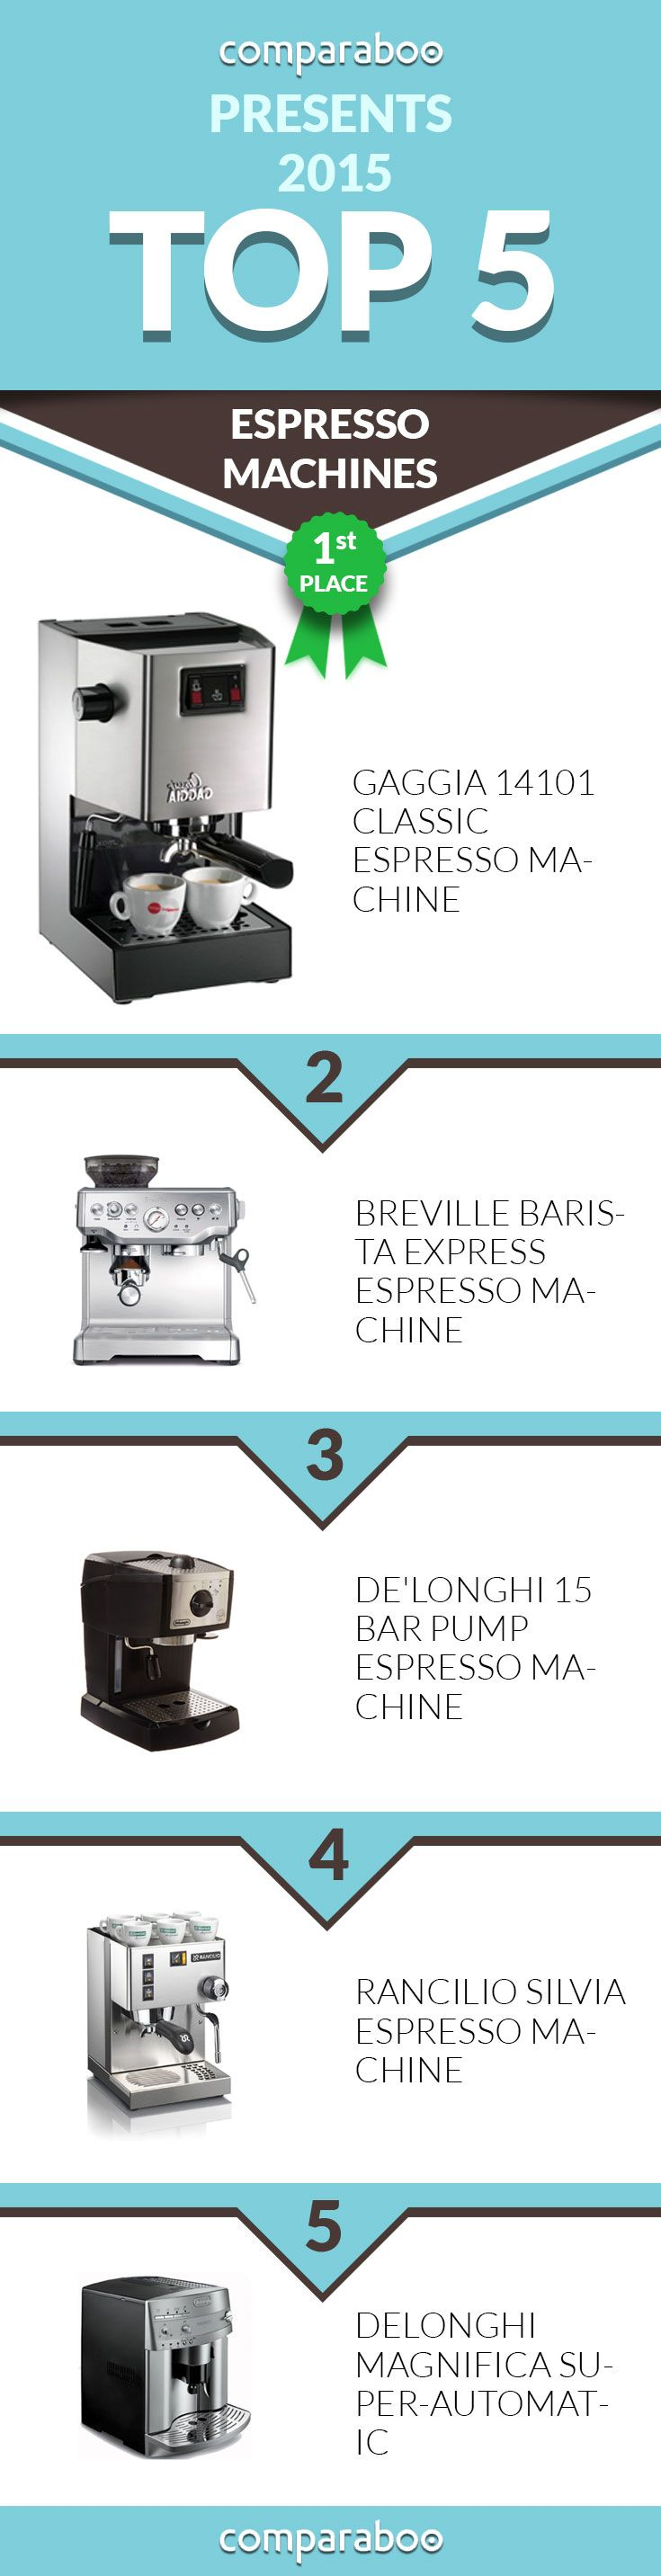 Here are the Best Espresso Machines on Comparaboo! #cafe www.comparaboo.com